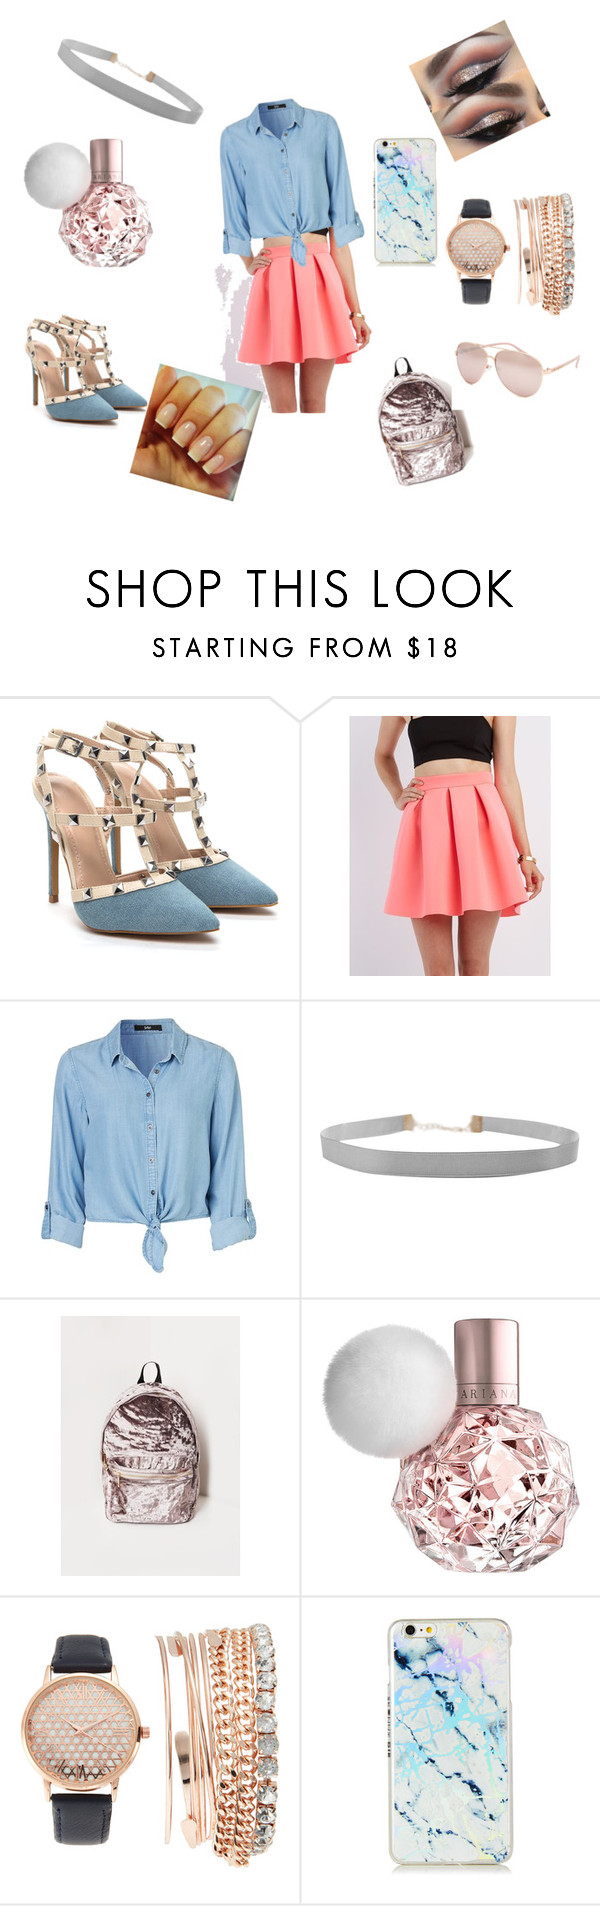 """Cotton candy 💝"" by azaria1613 ❤ liked on Polyvore featuring Charlotte Russe, Humble Chic, Missguided, Jessica Carlyle and Full Tilt"